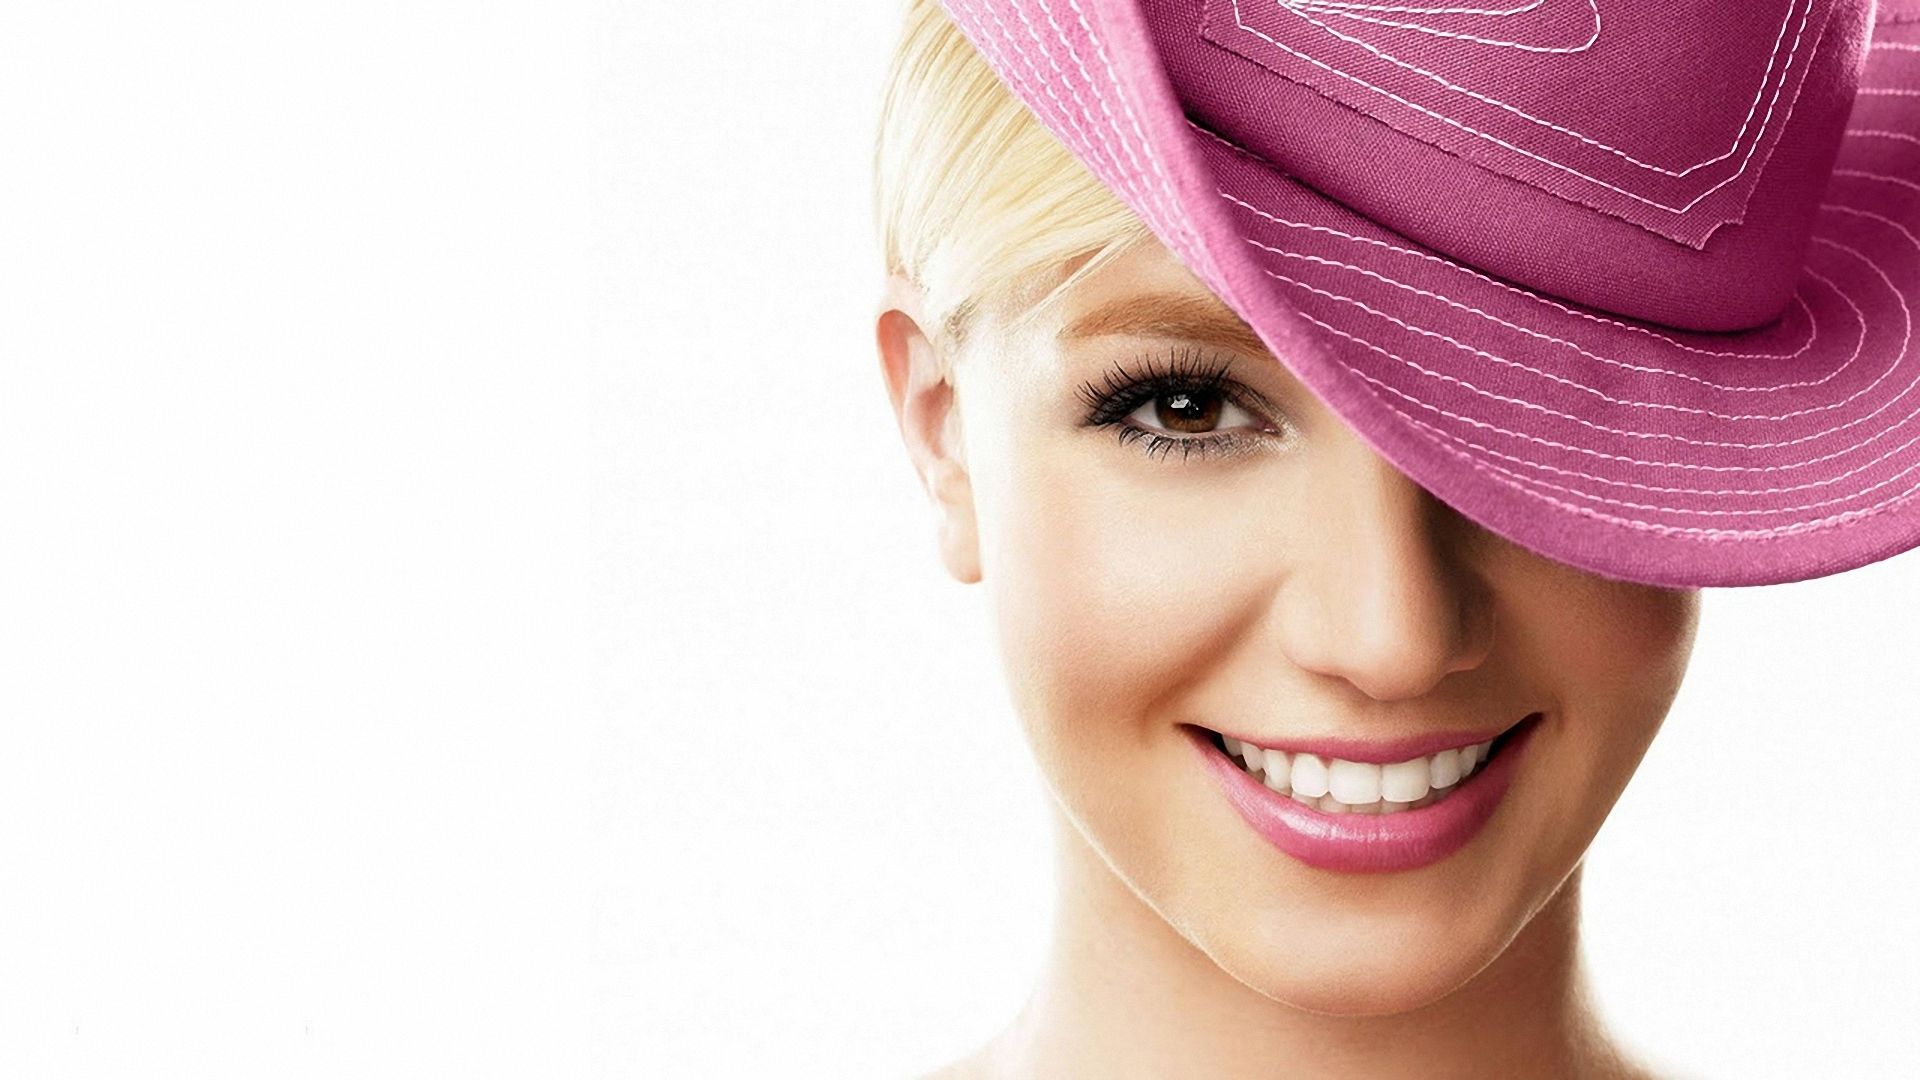 Download Wallpaper 1920x1080 Britney Spears, Hat, Smile